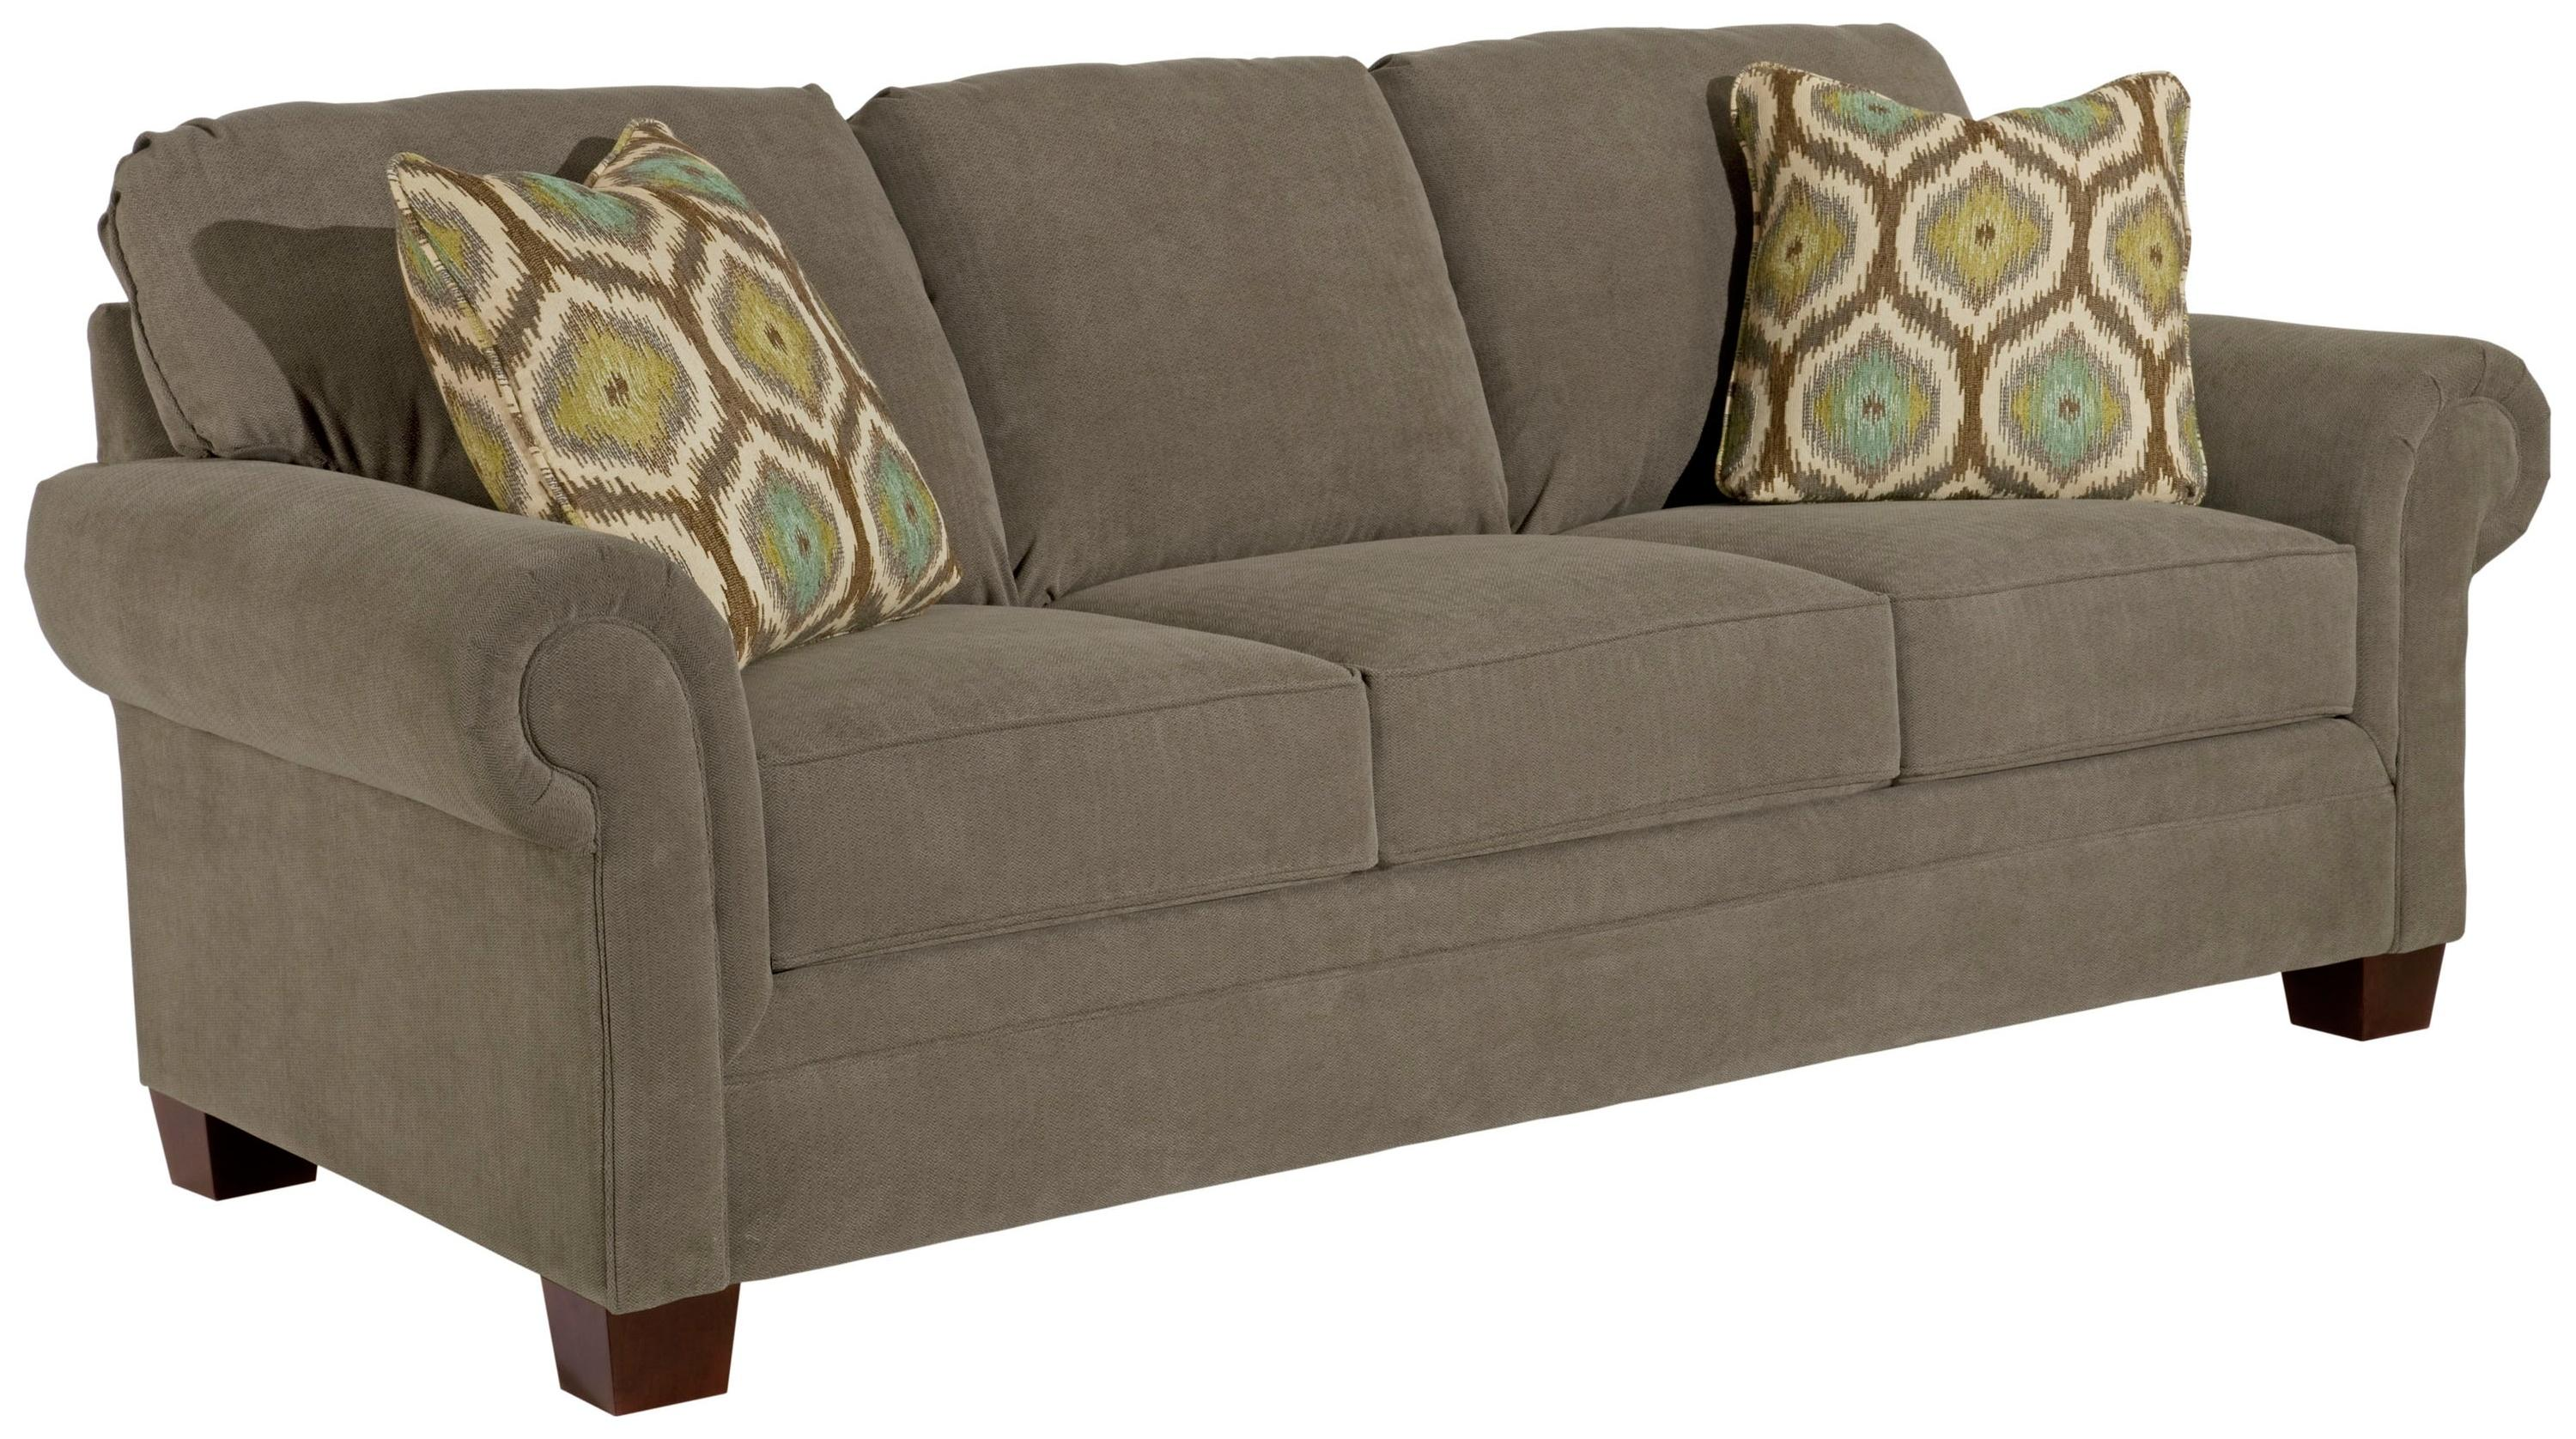 Broyhill Furniture Choices Upholstery <b>Customizable</b> 87 Inch Standard Sofa - Item Number: B222-3